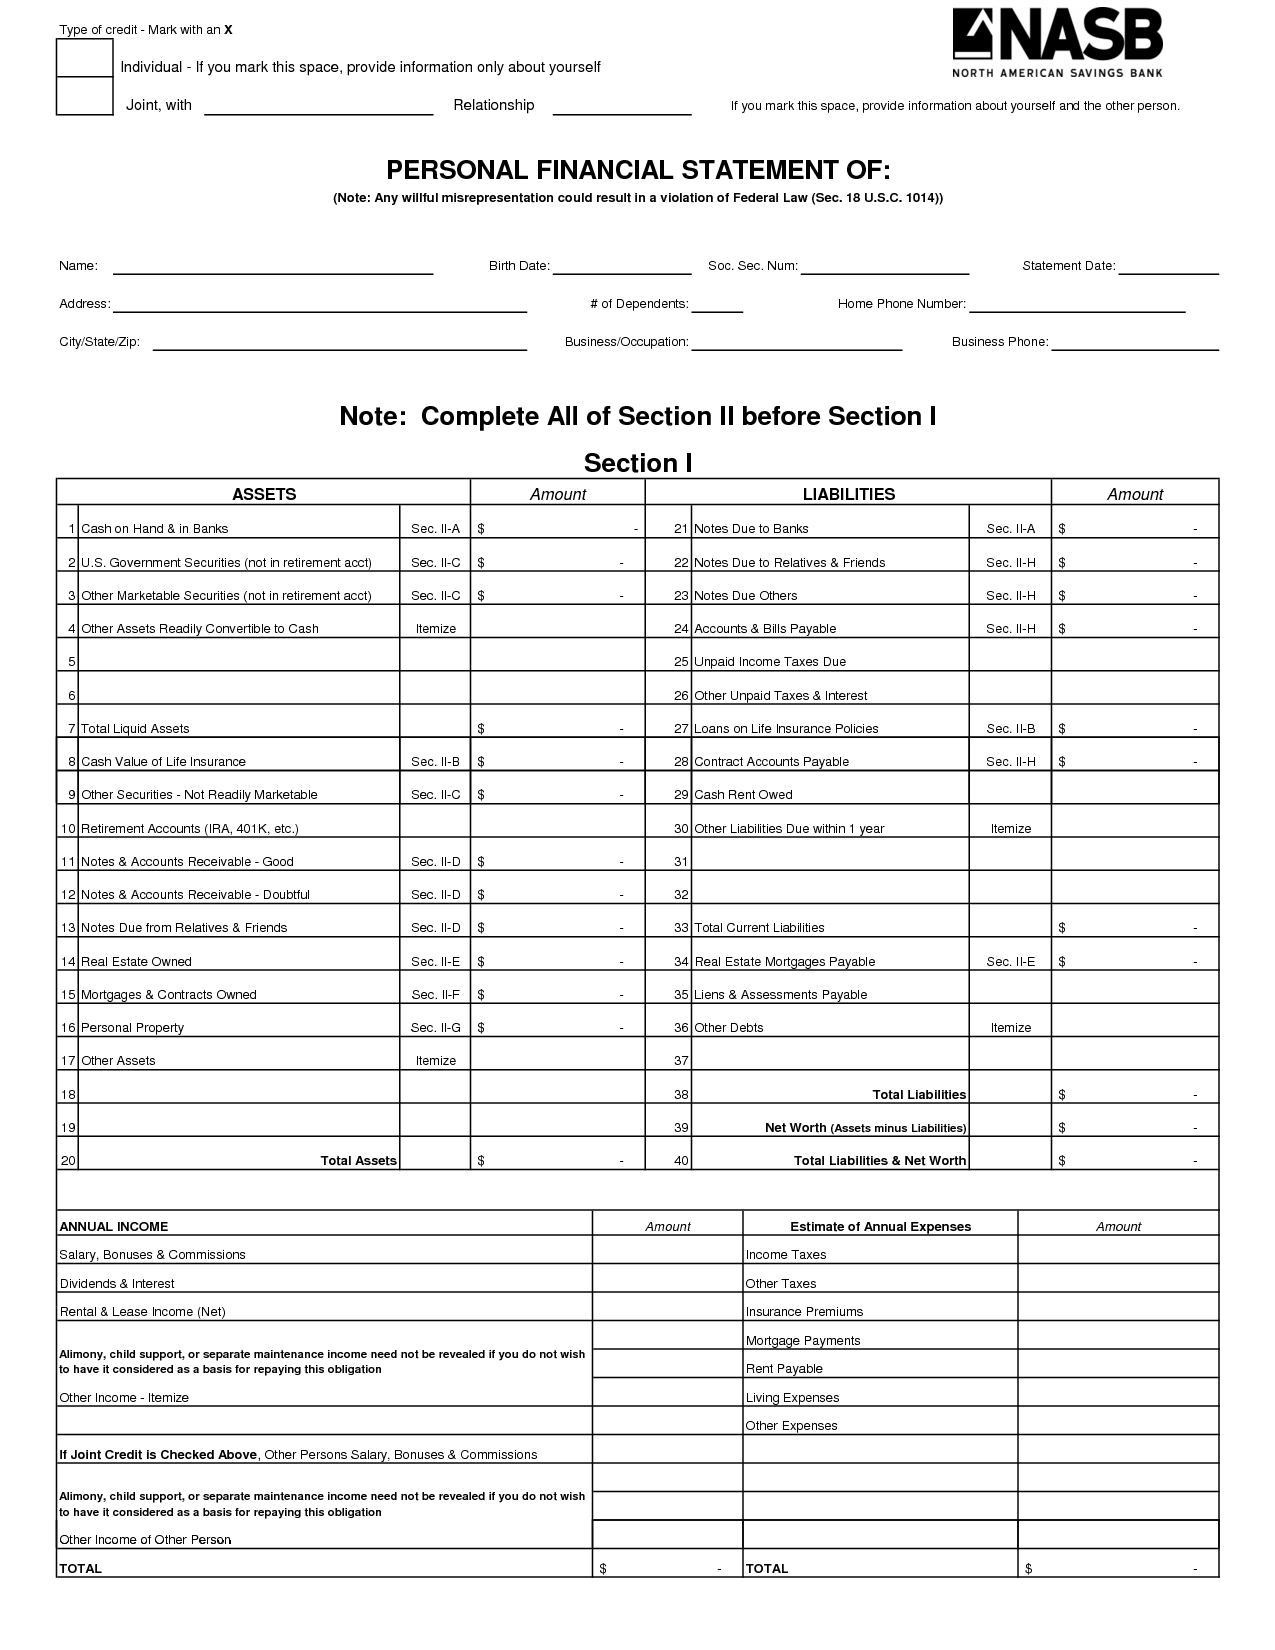 Personal Financial Statement Template Free and Free Printable Personal Financial Statement Excel Blank Personal